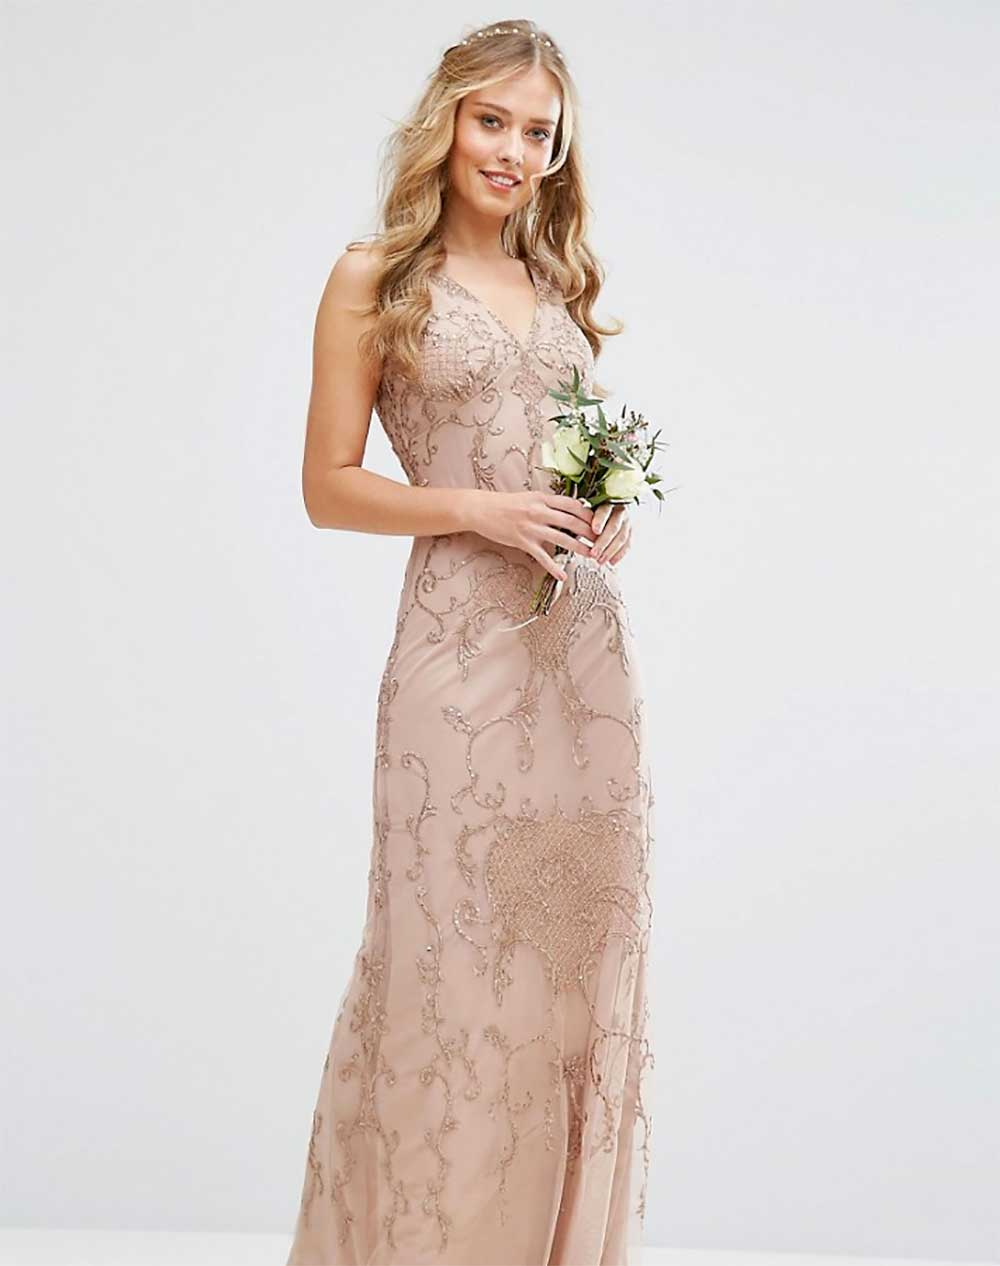 Embroidered powder ceremony dress